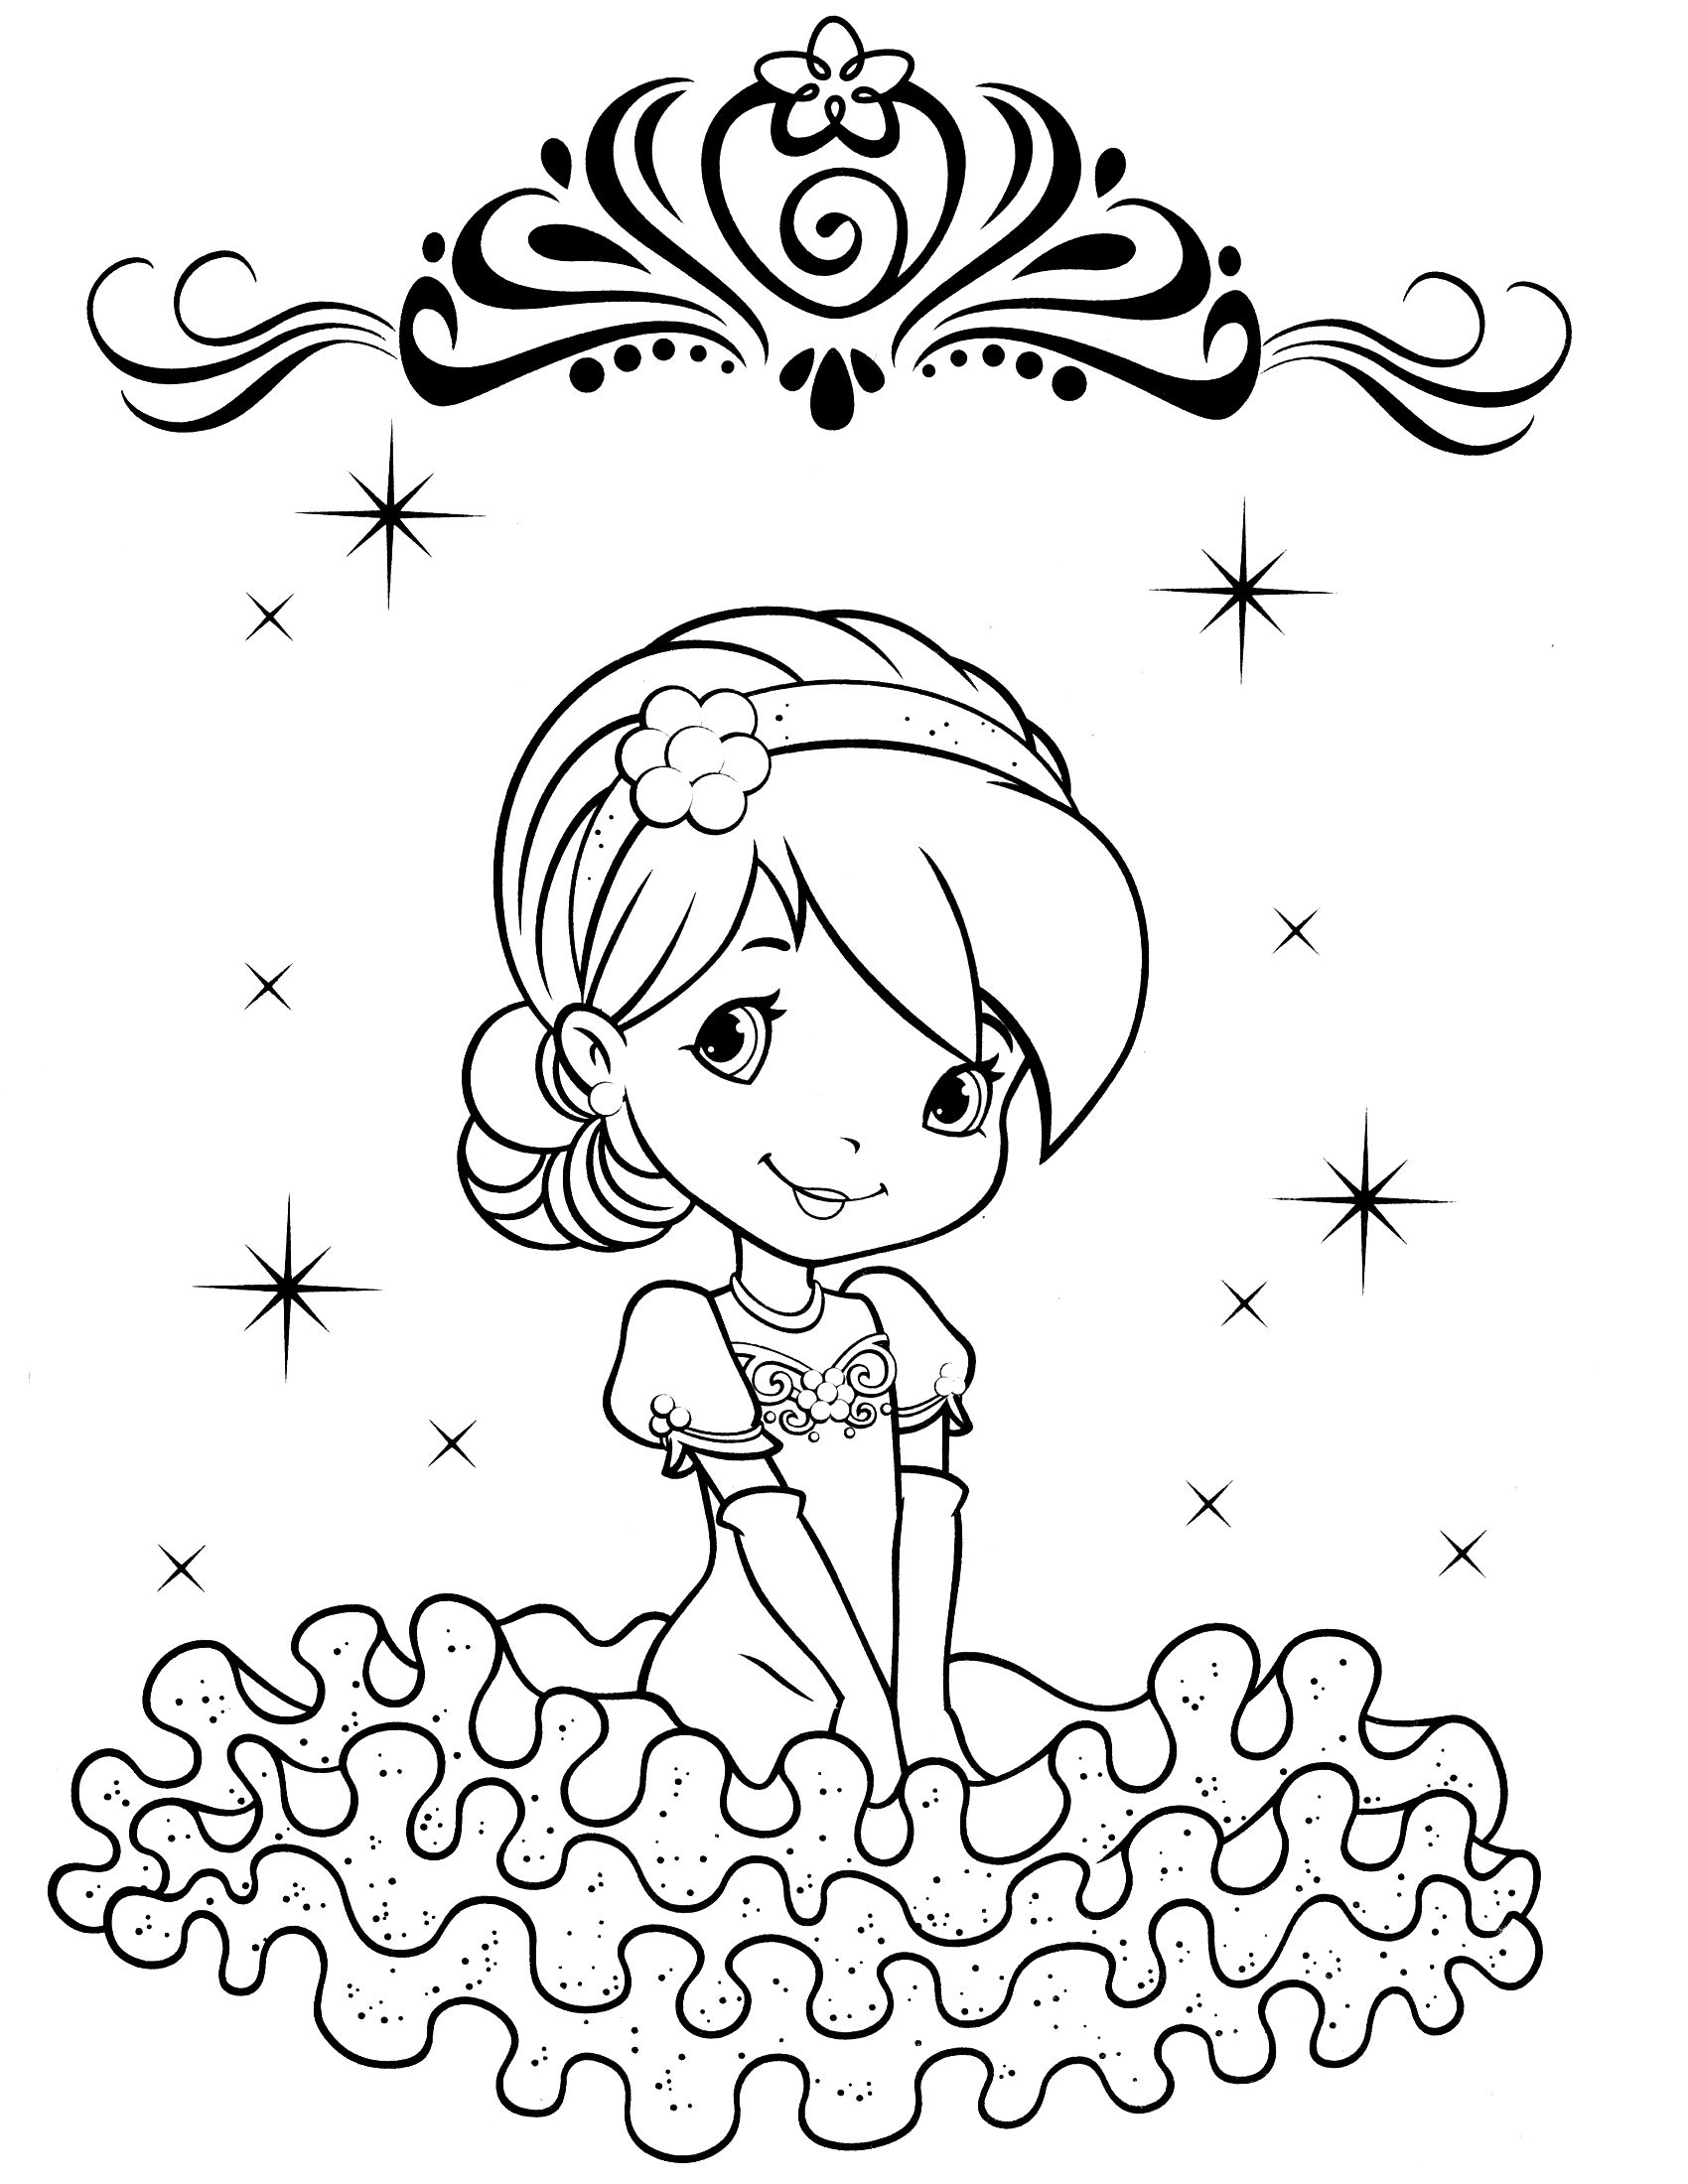 Strawberry Shortcake Cherry Jam coloring page | Free Printable ... | 2200x1700